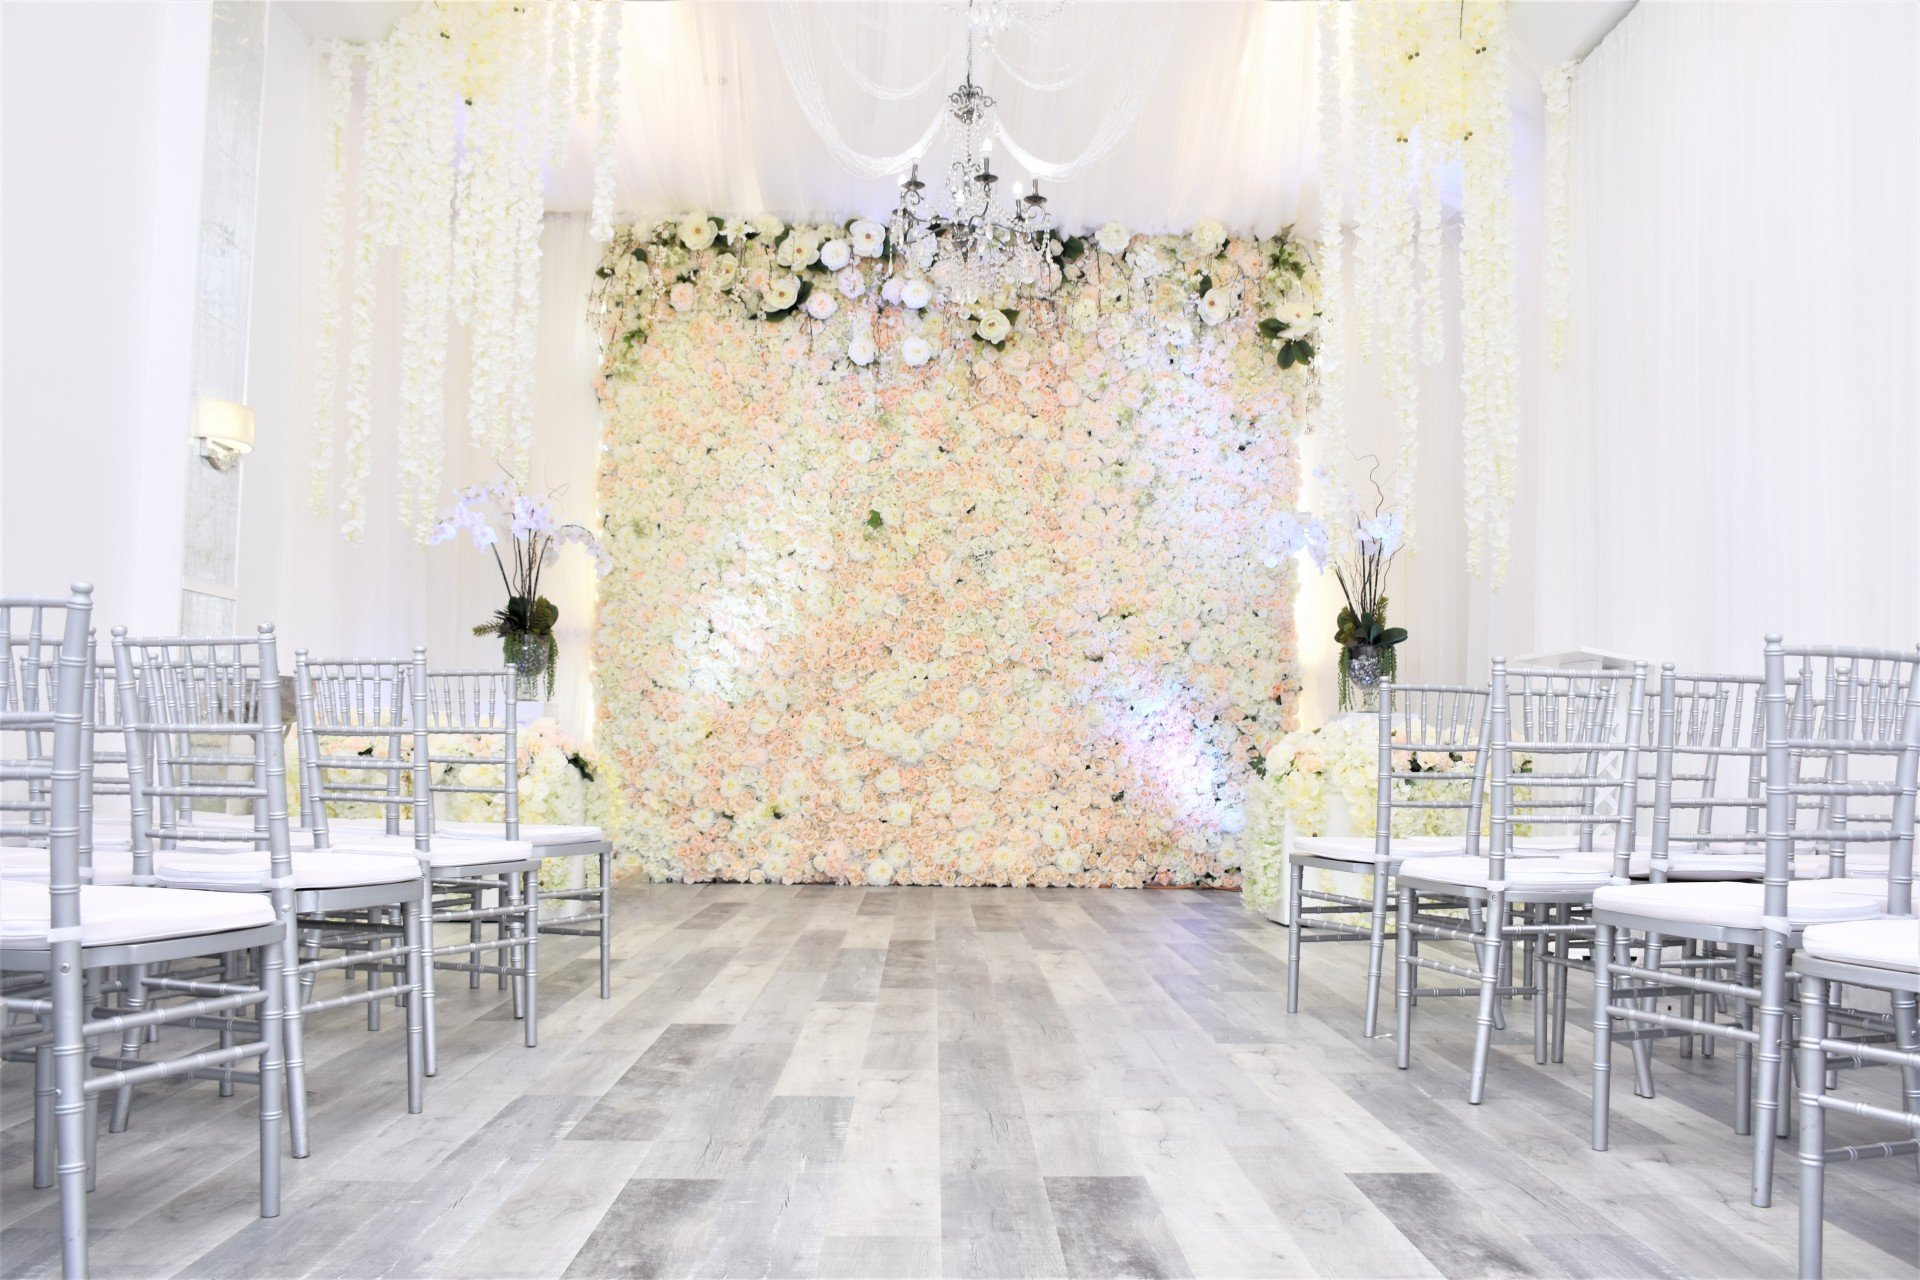 The South Bay Wedding Center & Wedding Chapel, Designer Inspired Wedding Chapel